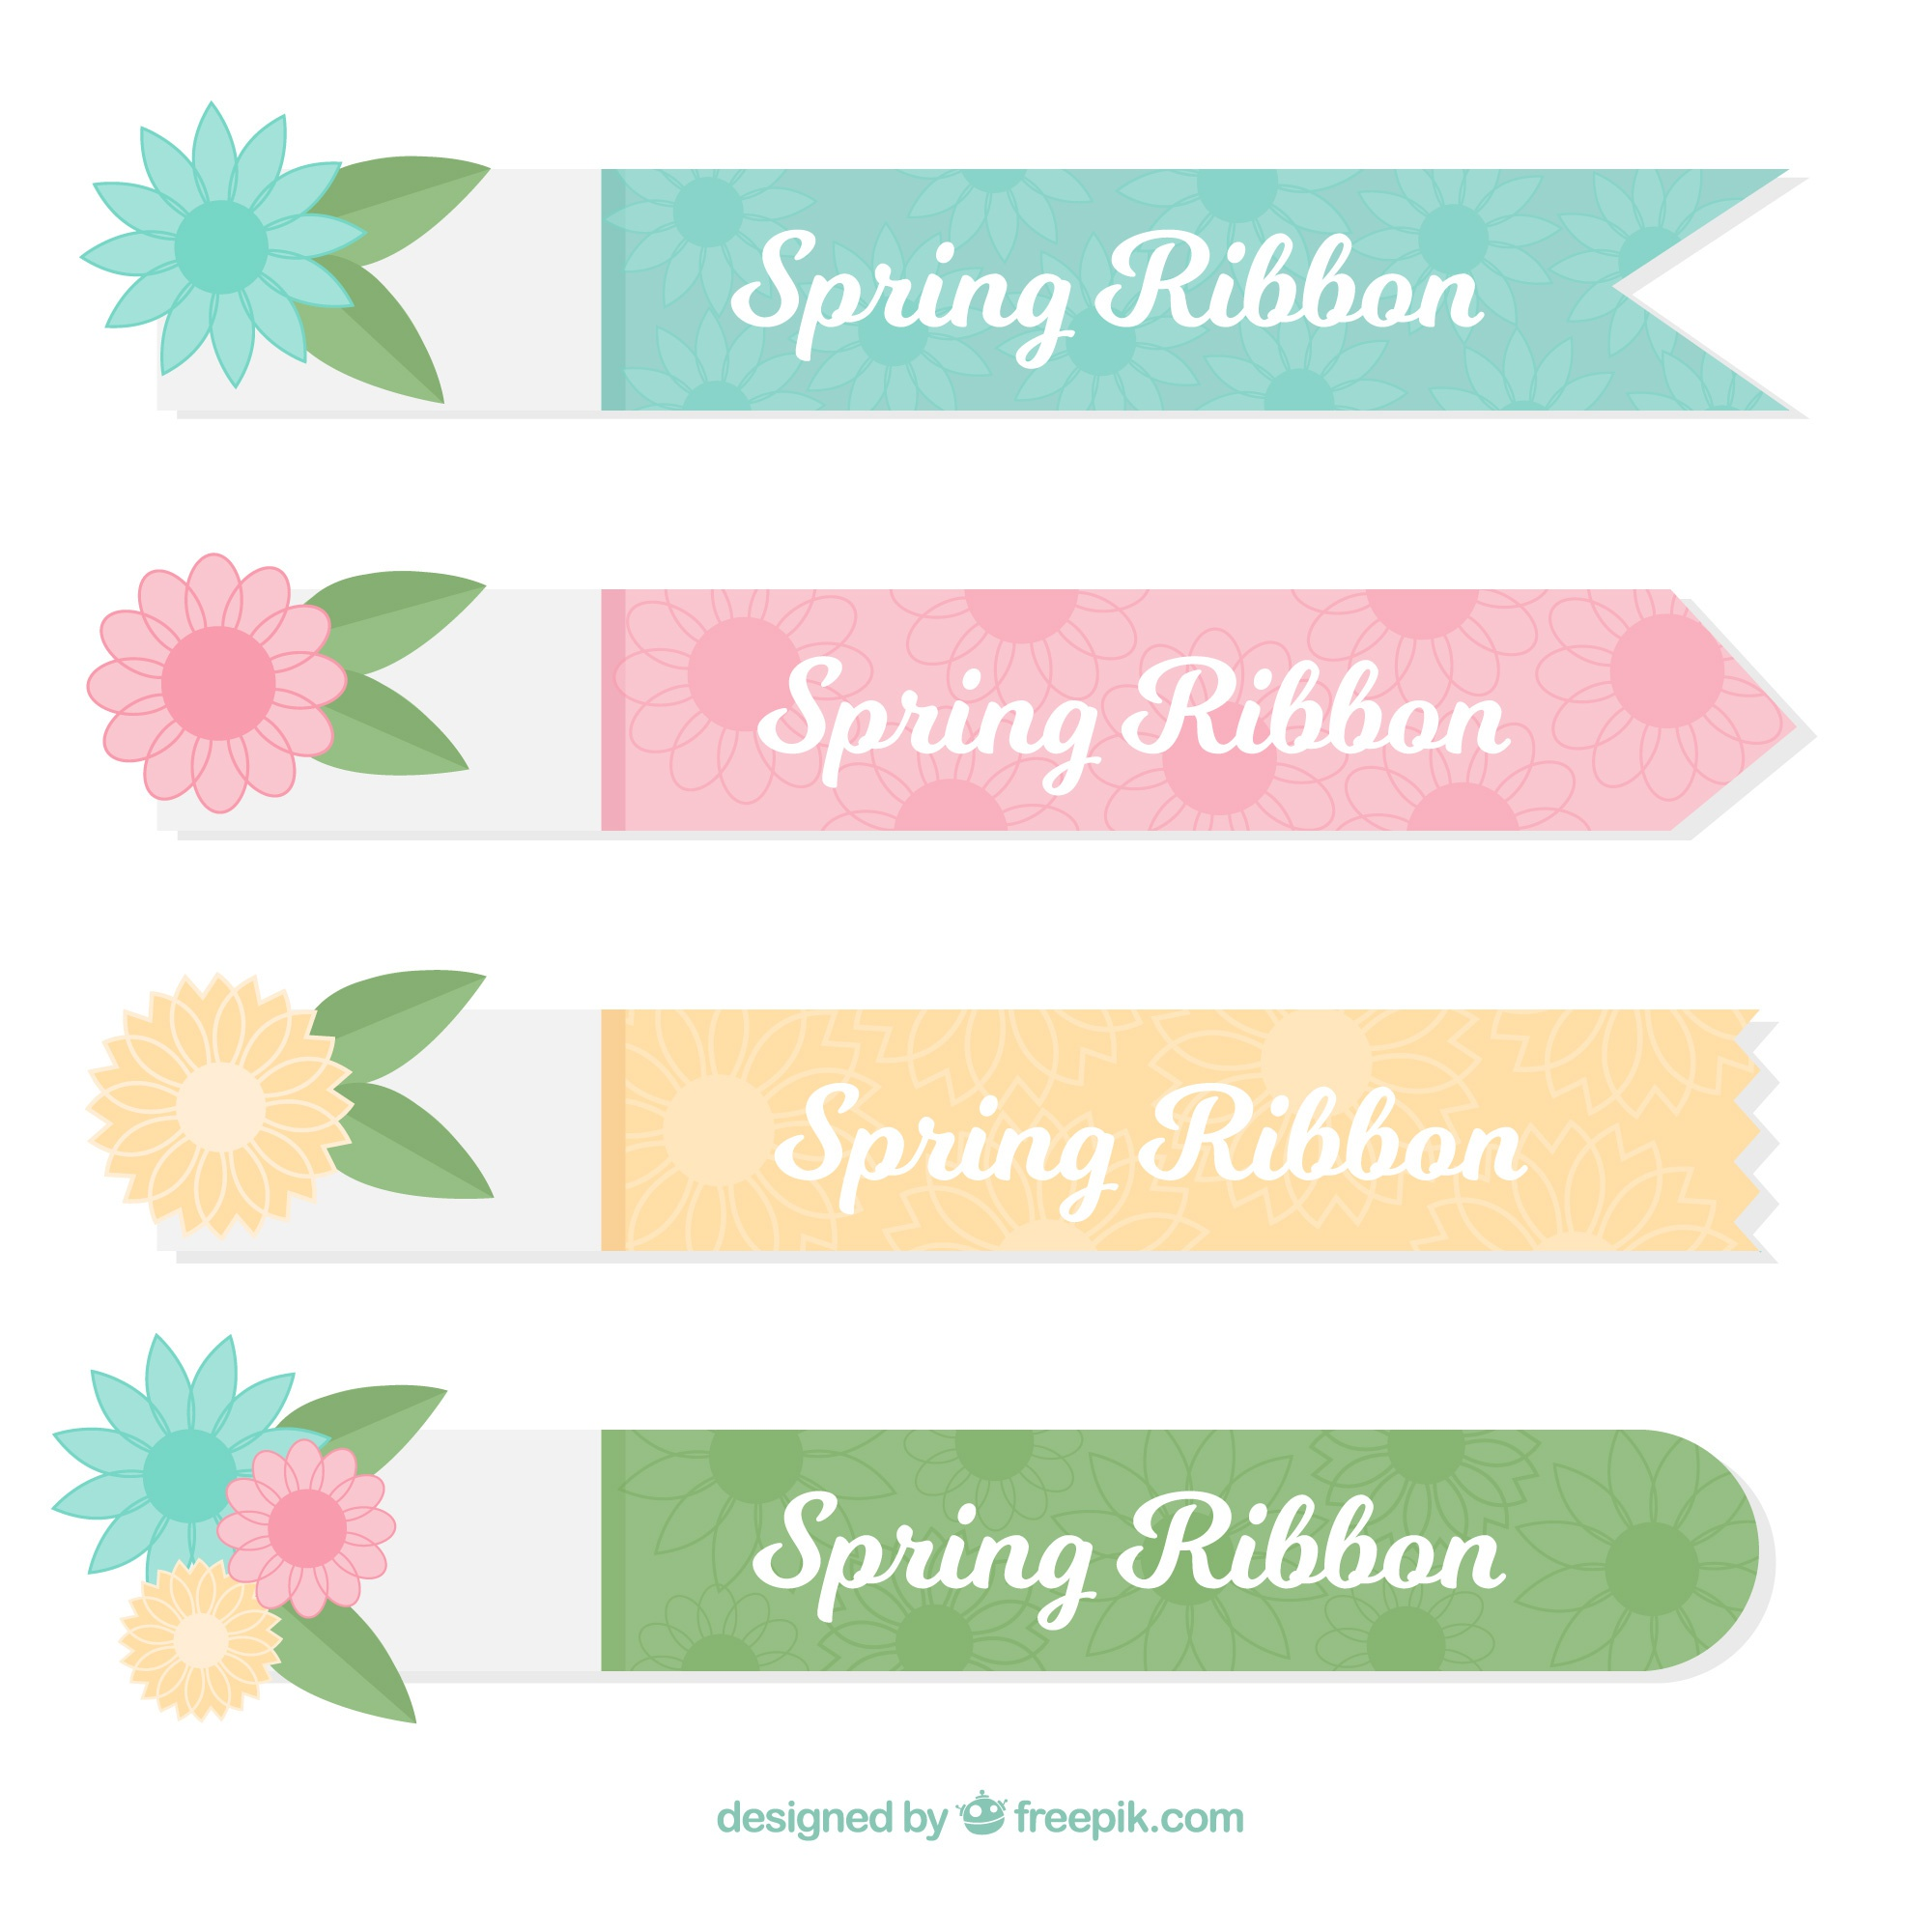 Four decorative spring ribbons in pastel colors